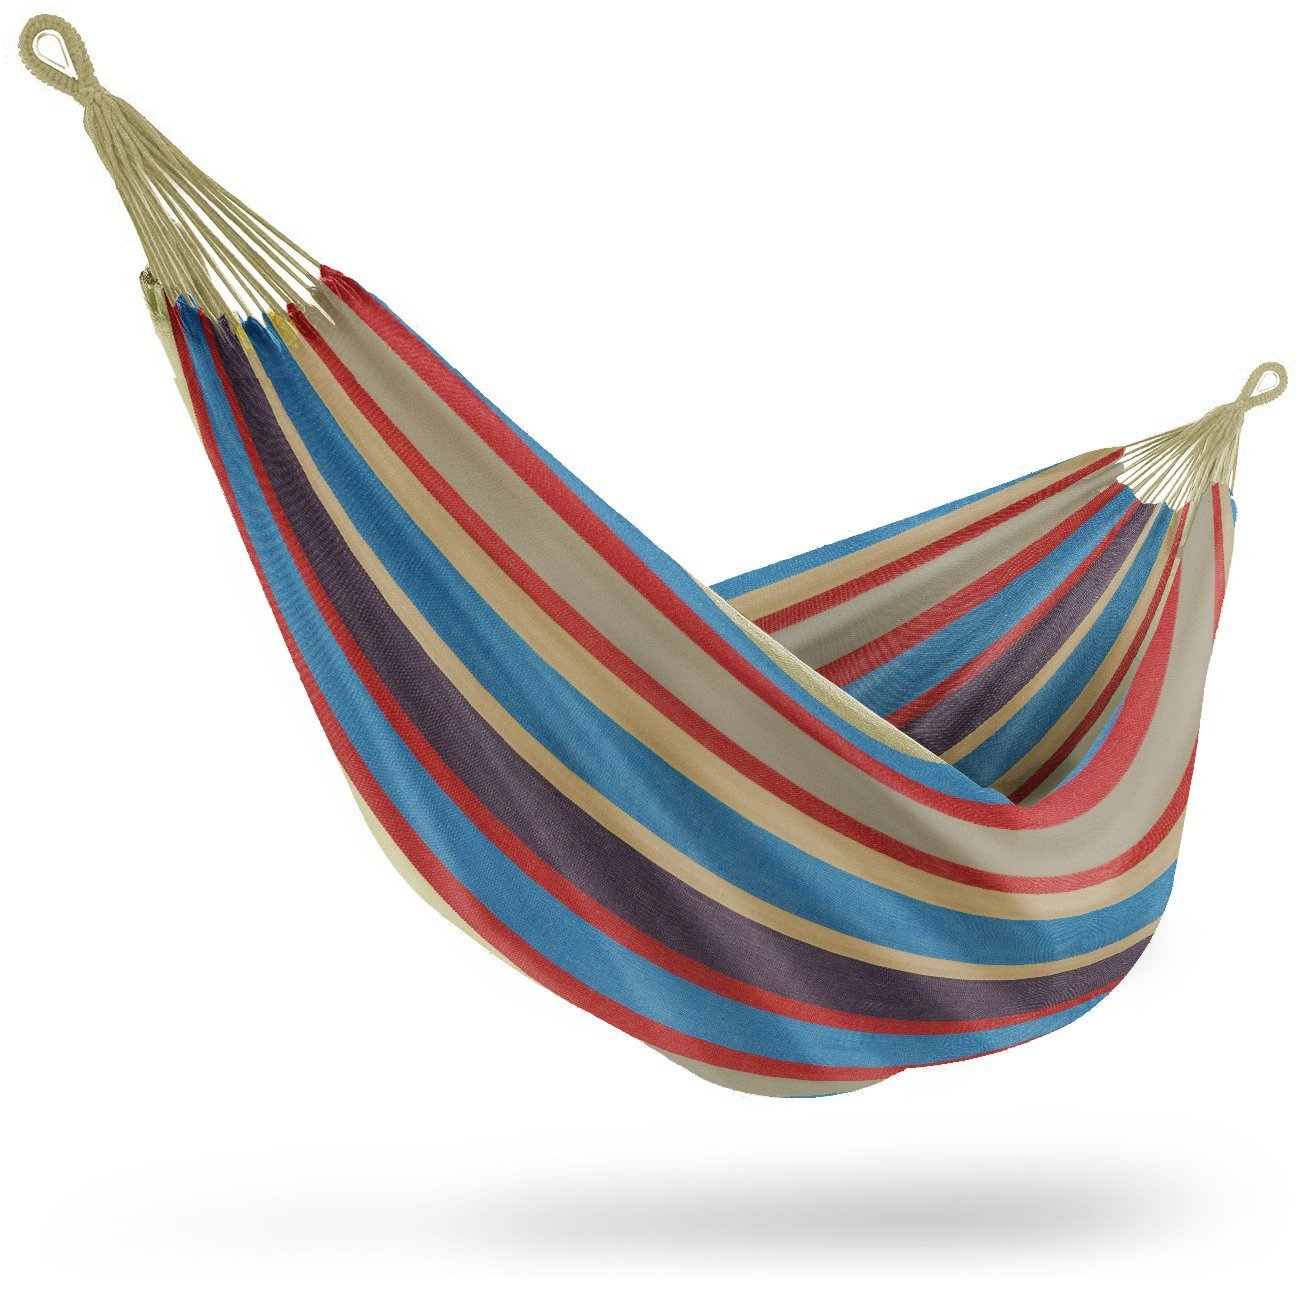 The Sorbus Brazilian Double Hammock